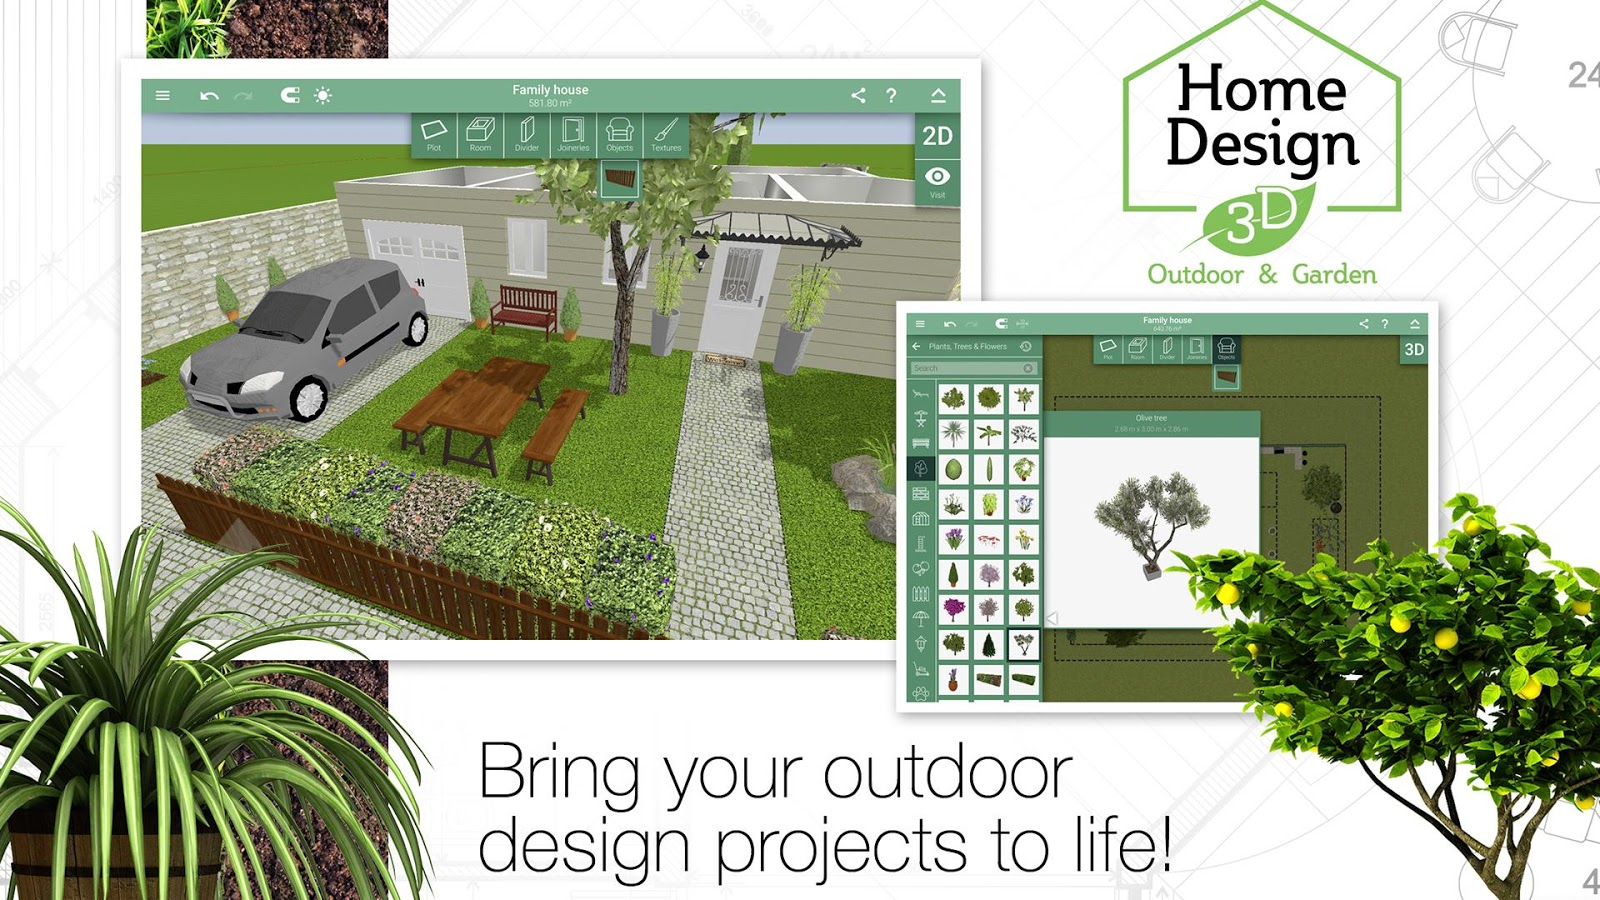 Home design 3d outdoor garden android apps on google play for Best house garden design